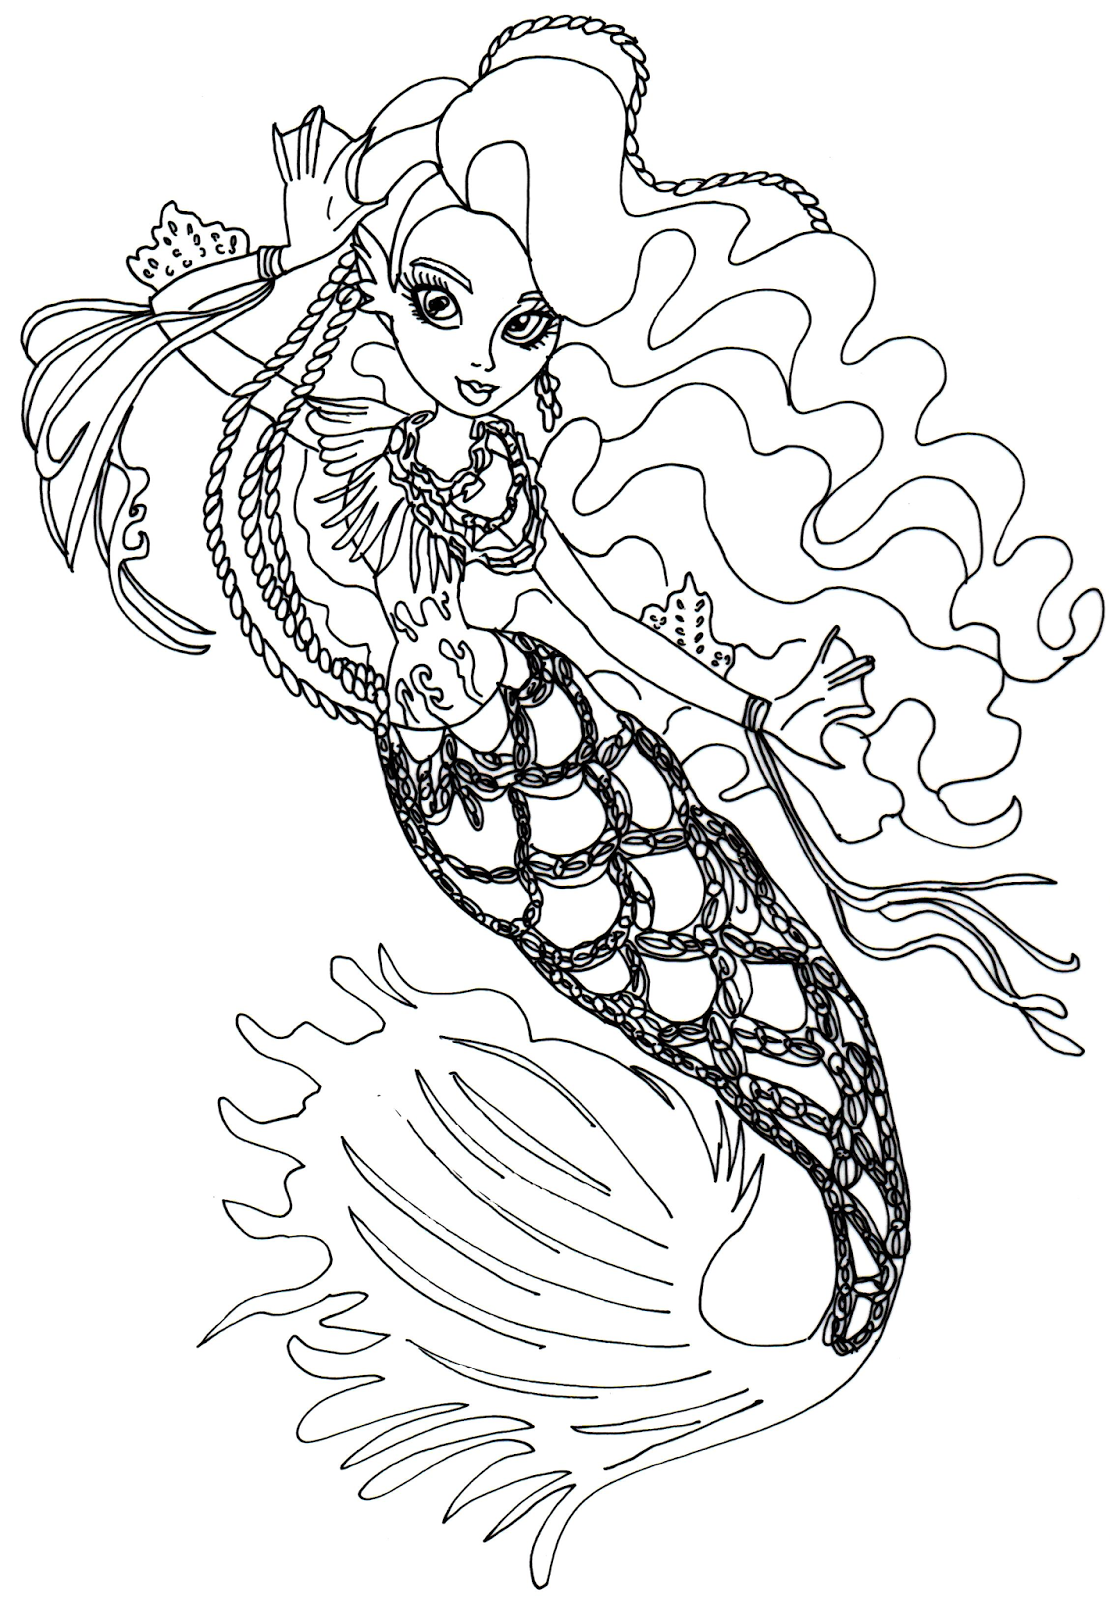 picture regarding Monster High Printable Coloring Pages identified as 13 monster superior coloring internet pages printable - Print Colour Craft